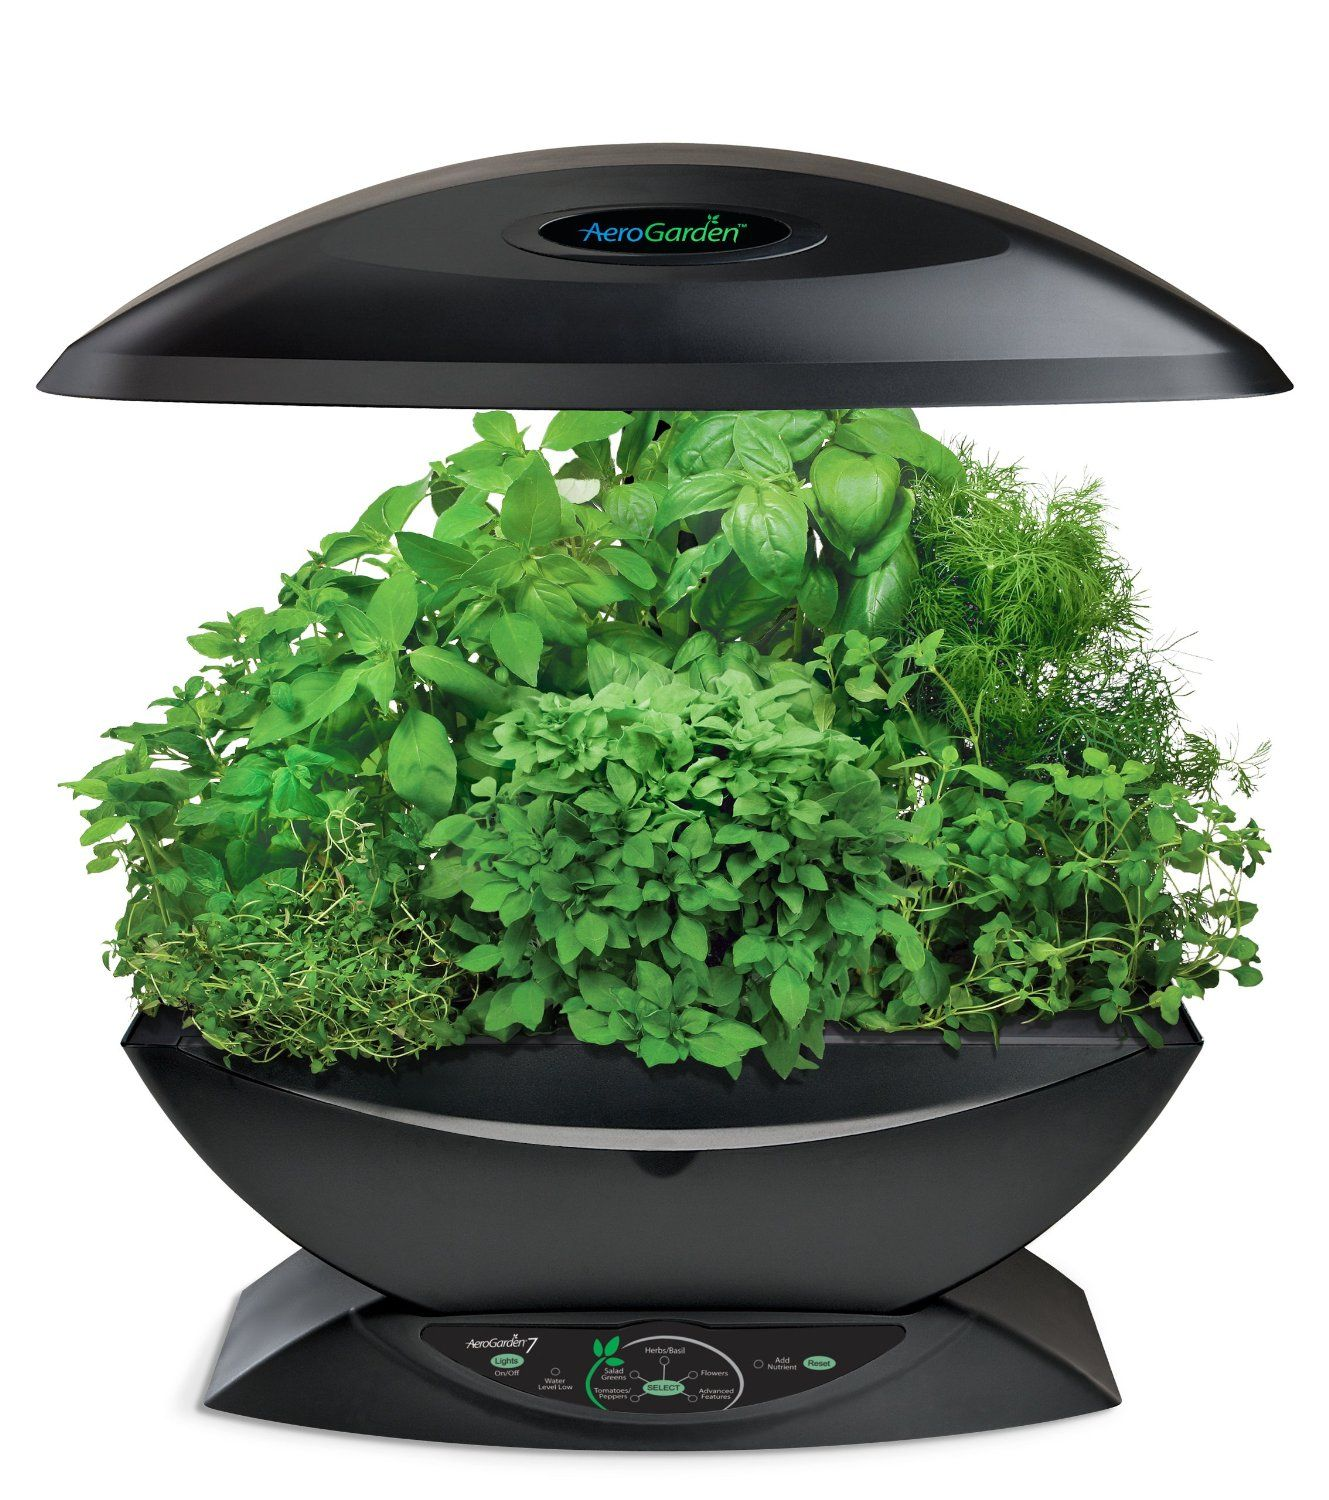 1000 images about Indoor Herb Gardens on Pinterest Gardens